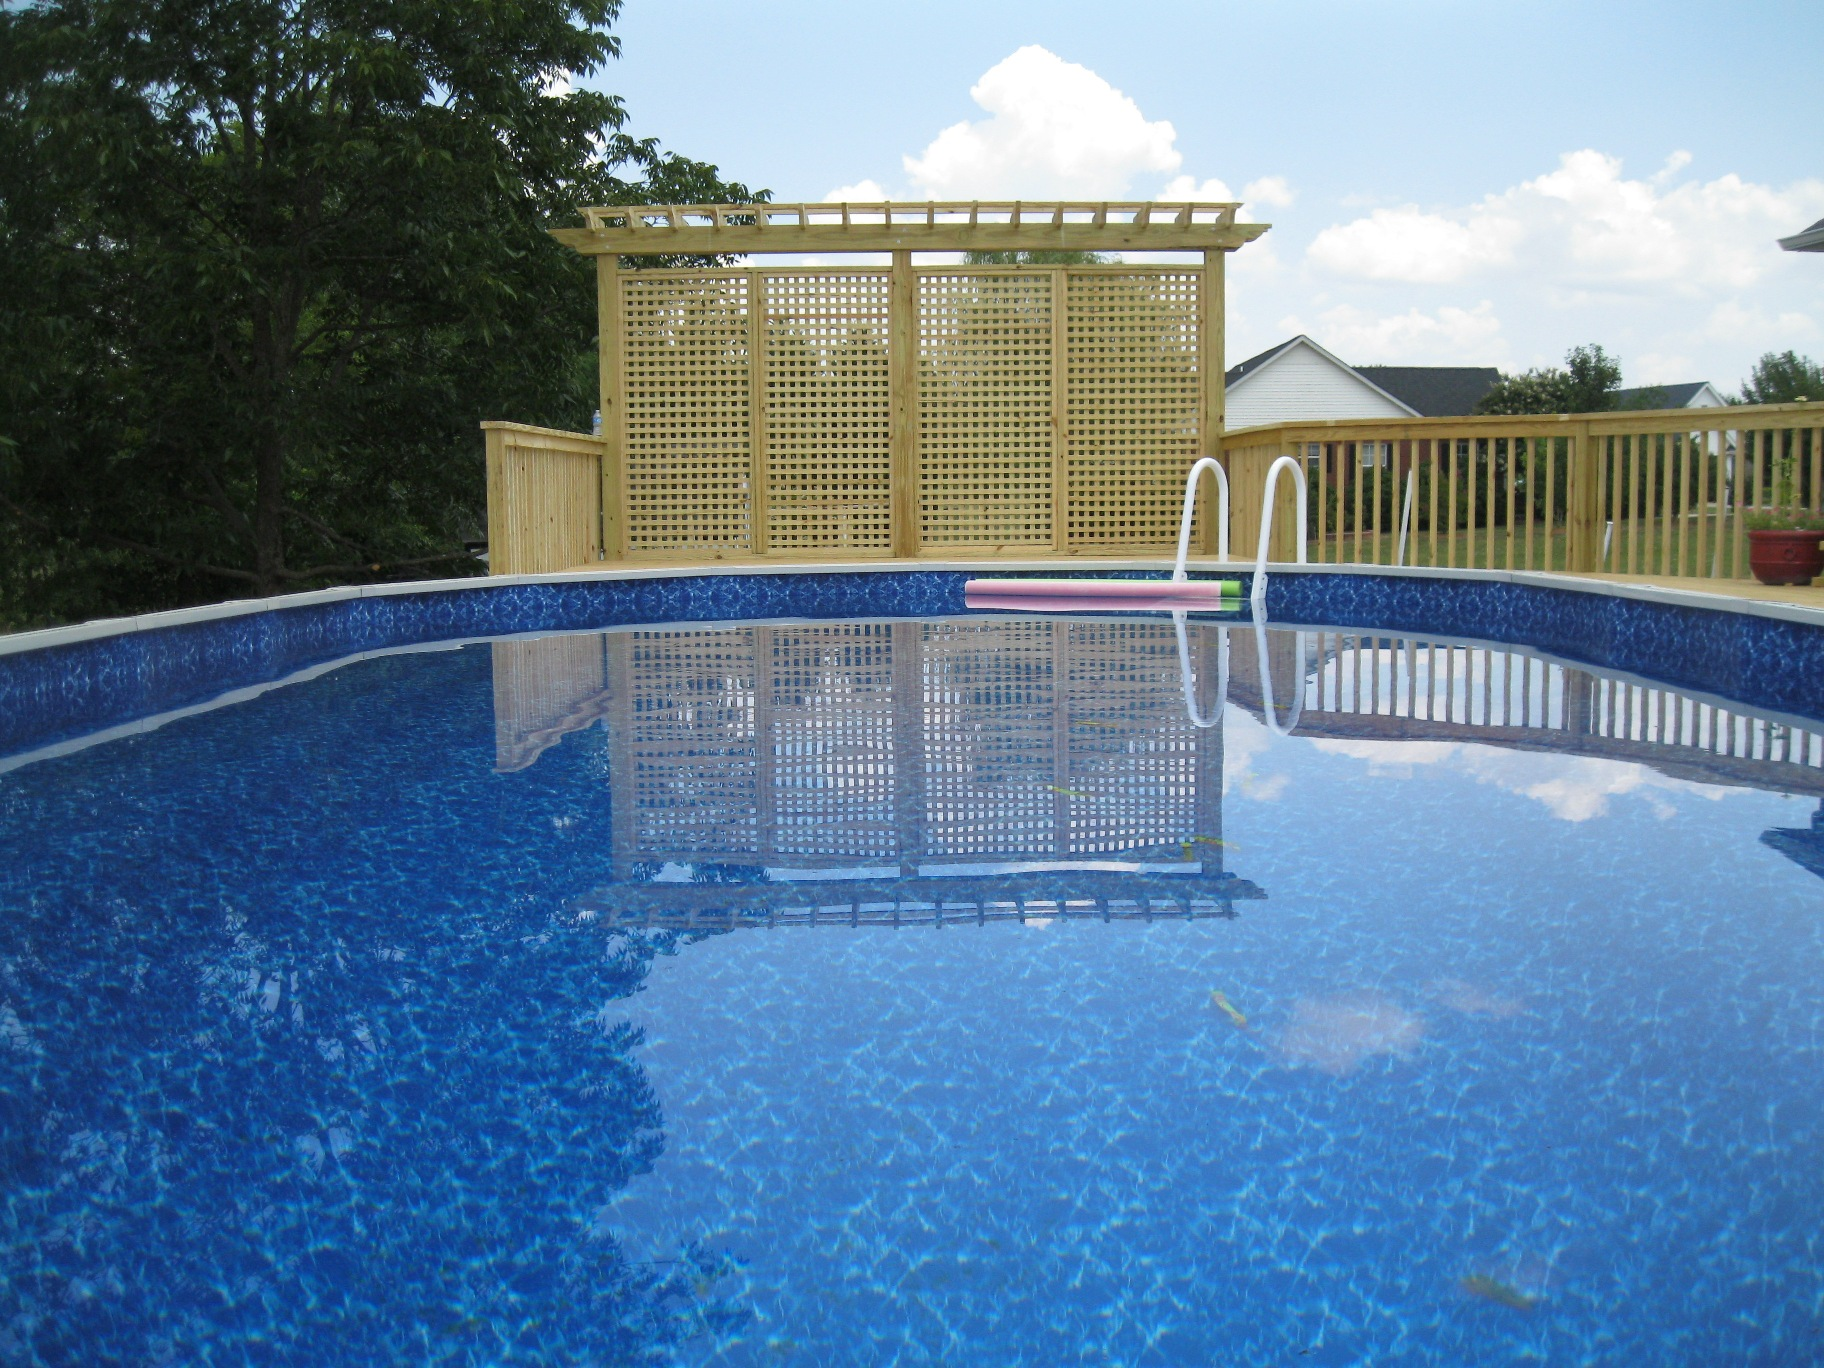 General contractor azteca outdoor atlanta ga deck pool 18x34 for Above ground pool decks las vegas